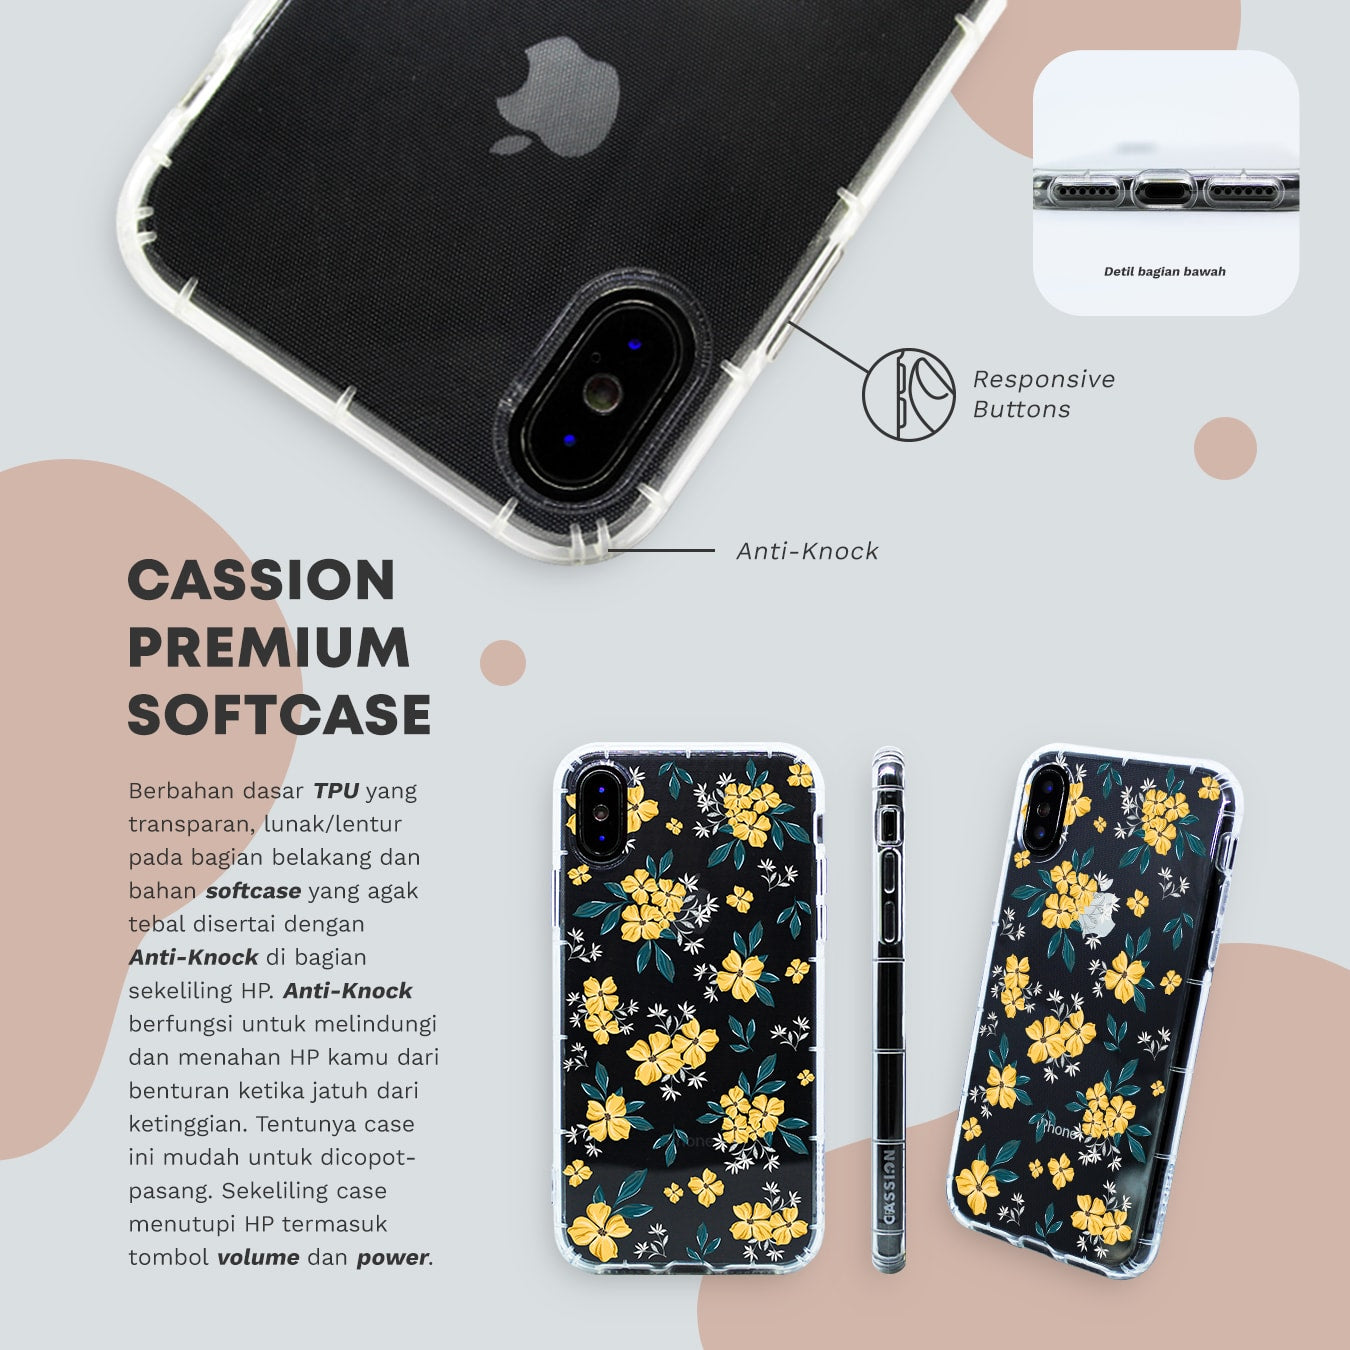 Cassion Premium Softcase